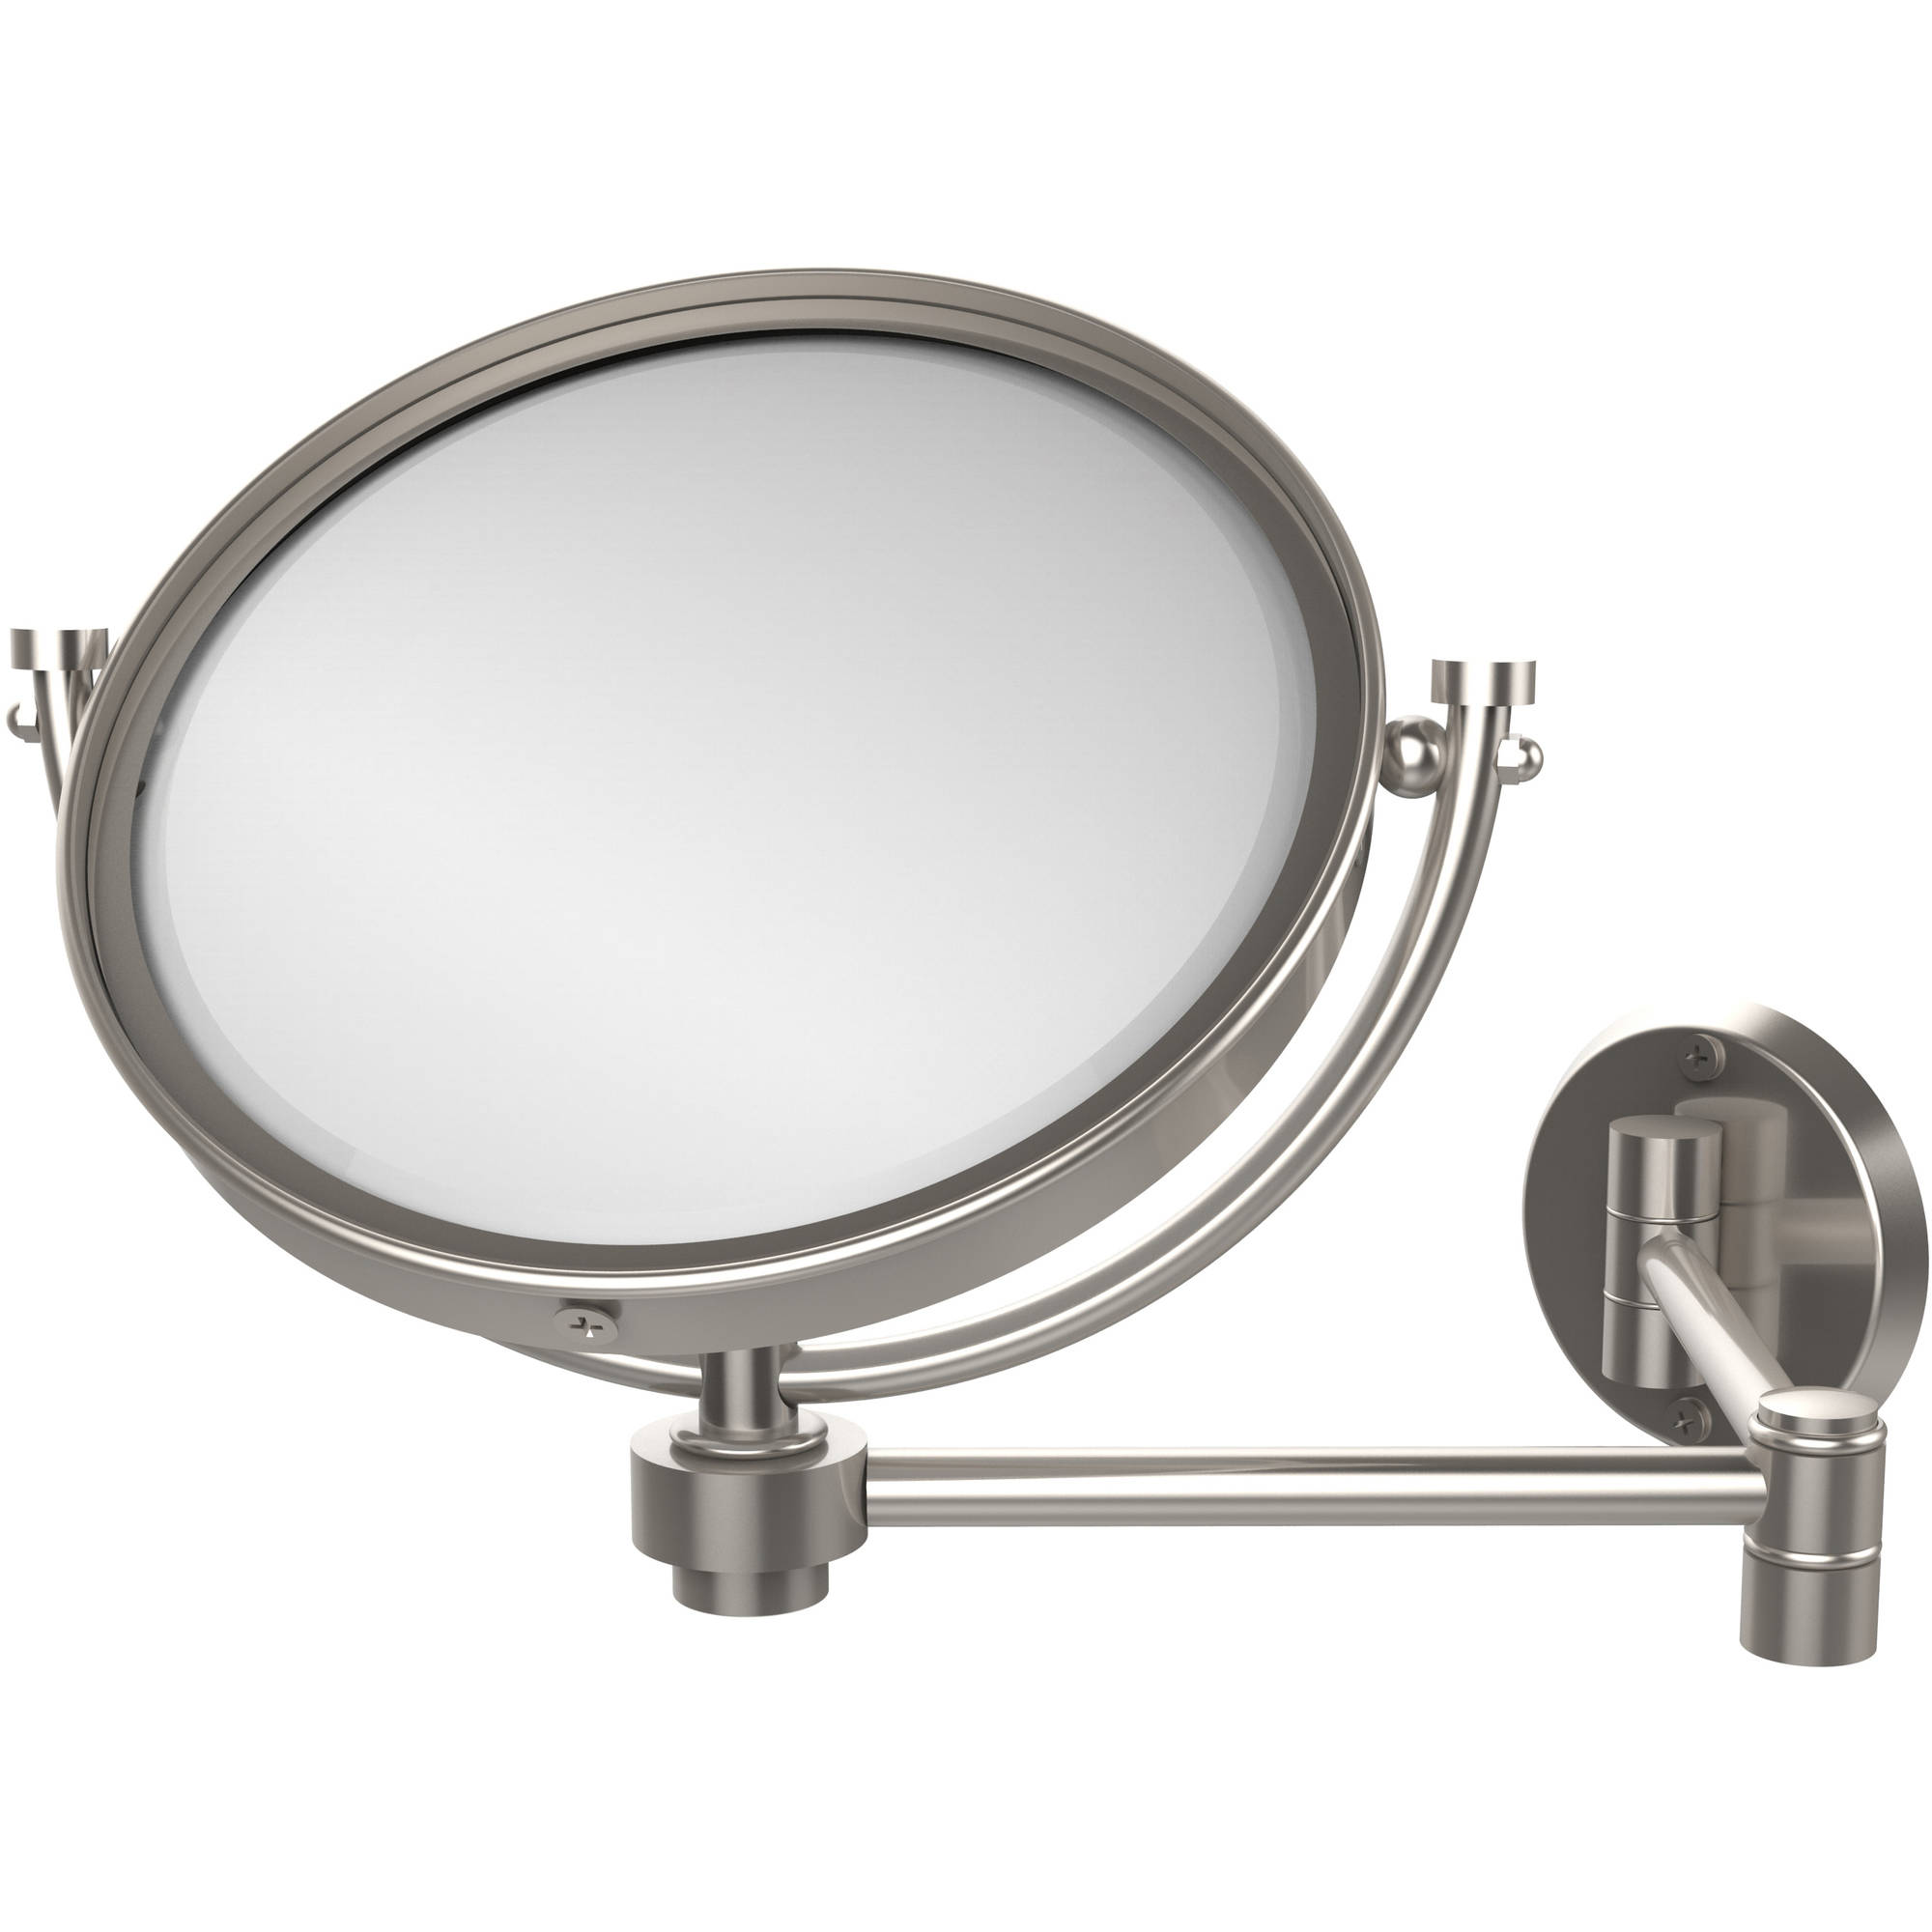 """8"""" Wall-Mounted Extending Make-Up Mirror, 2x Magnification"""